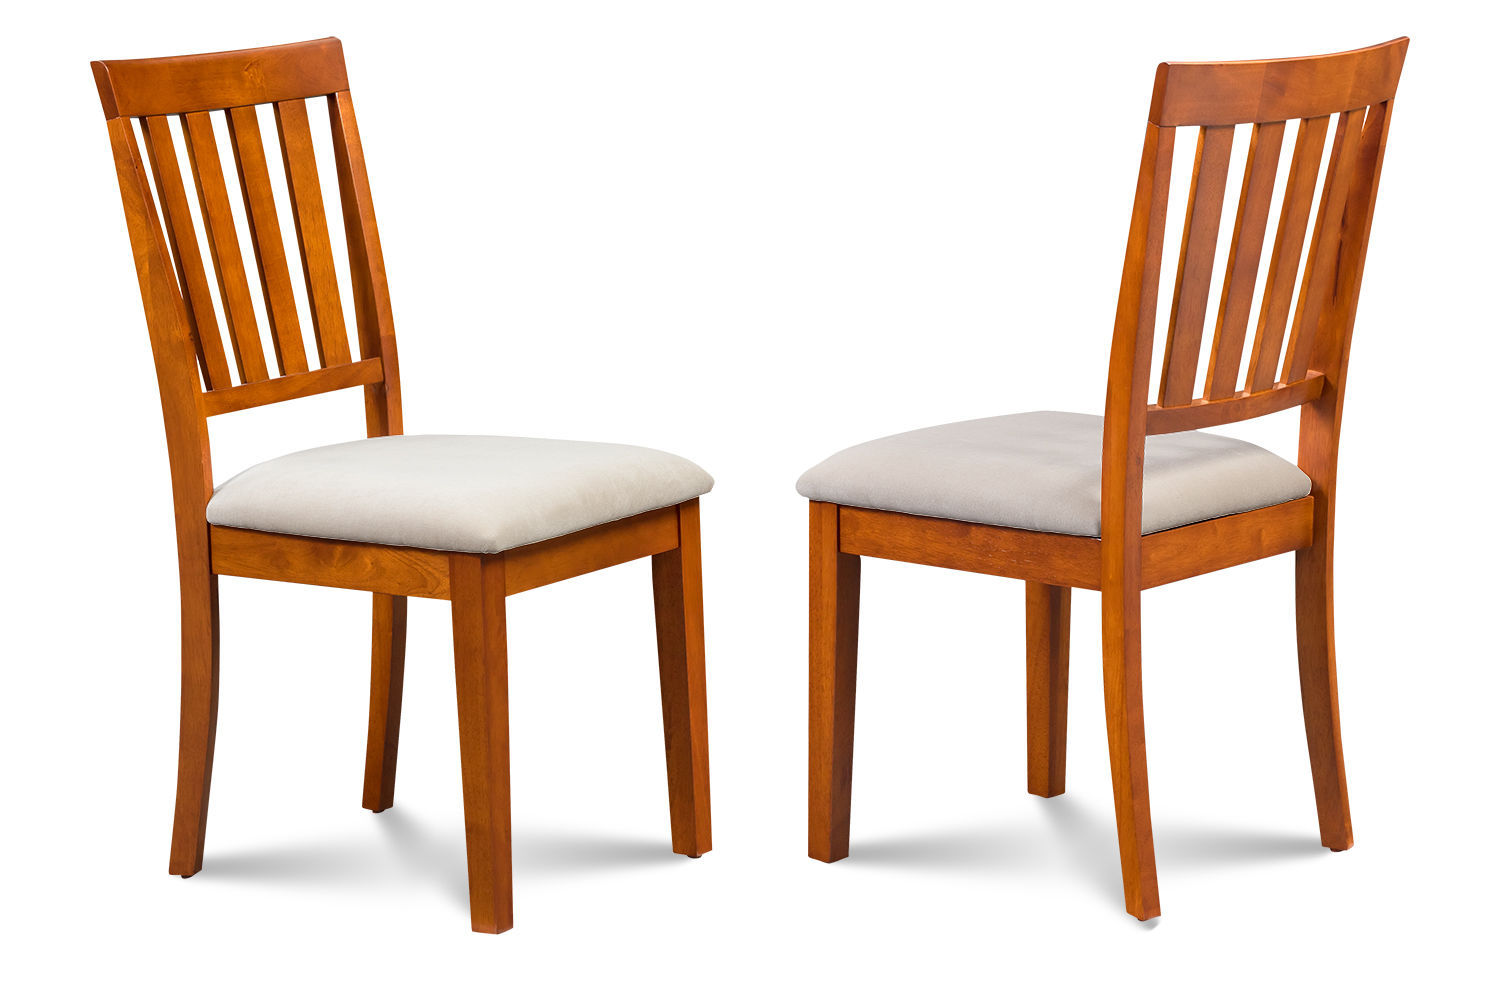 SET OF 6 MOCHA KITCHEN DINING CHAIRS WITH SOFT-PADDED SEAT